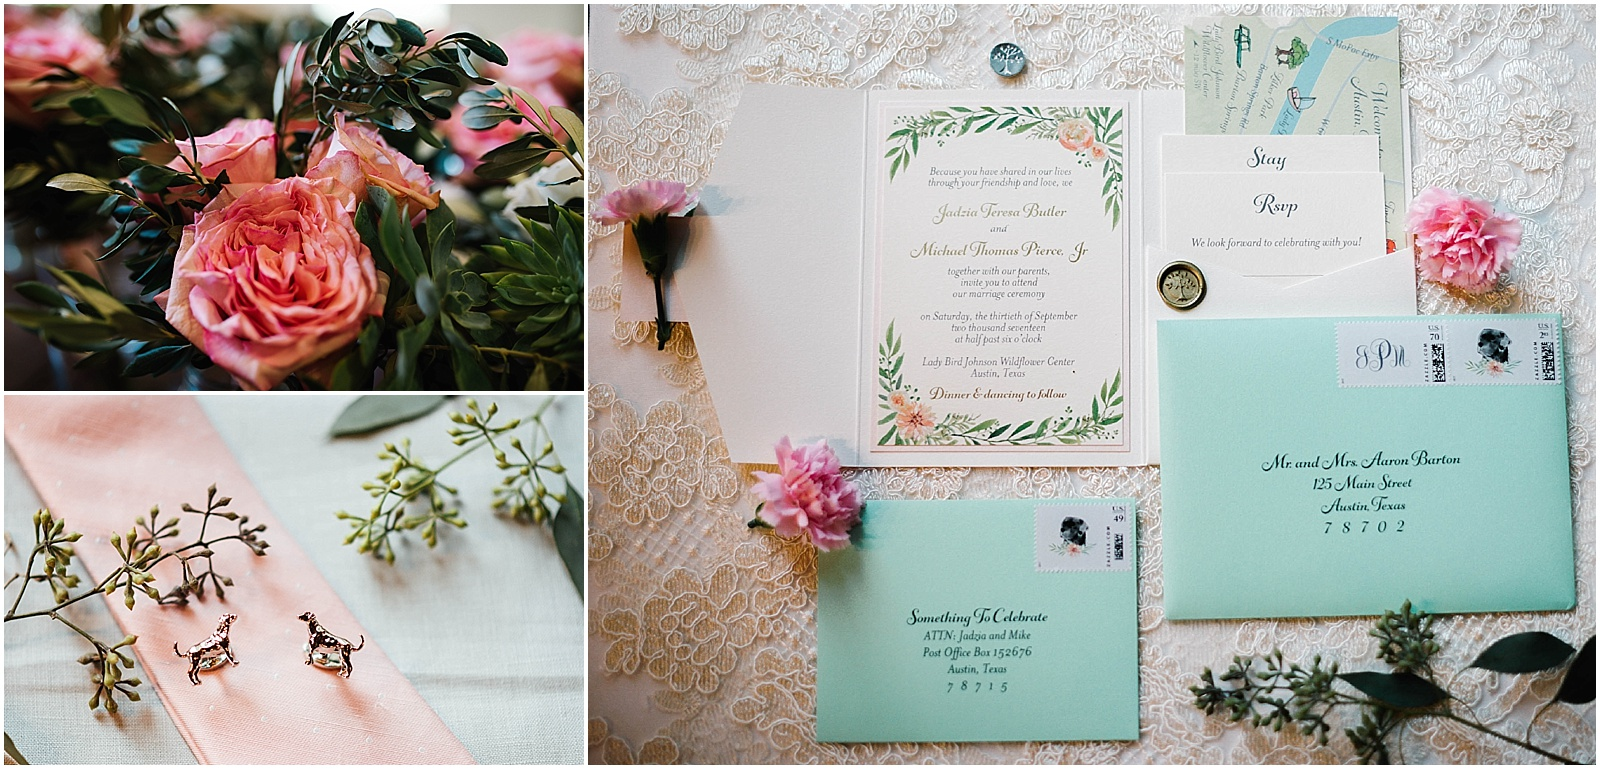 Stationery Mint Green Blush Pink and Grey Blush Pink Bridal Details at Lady Bird Johnson Wildflower Center Austin Texas Wedding